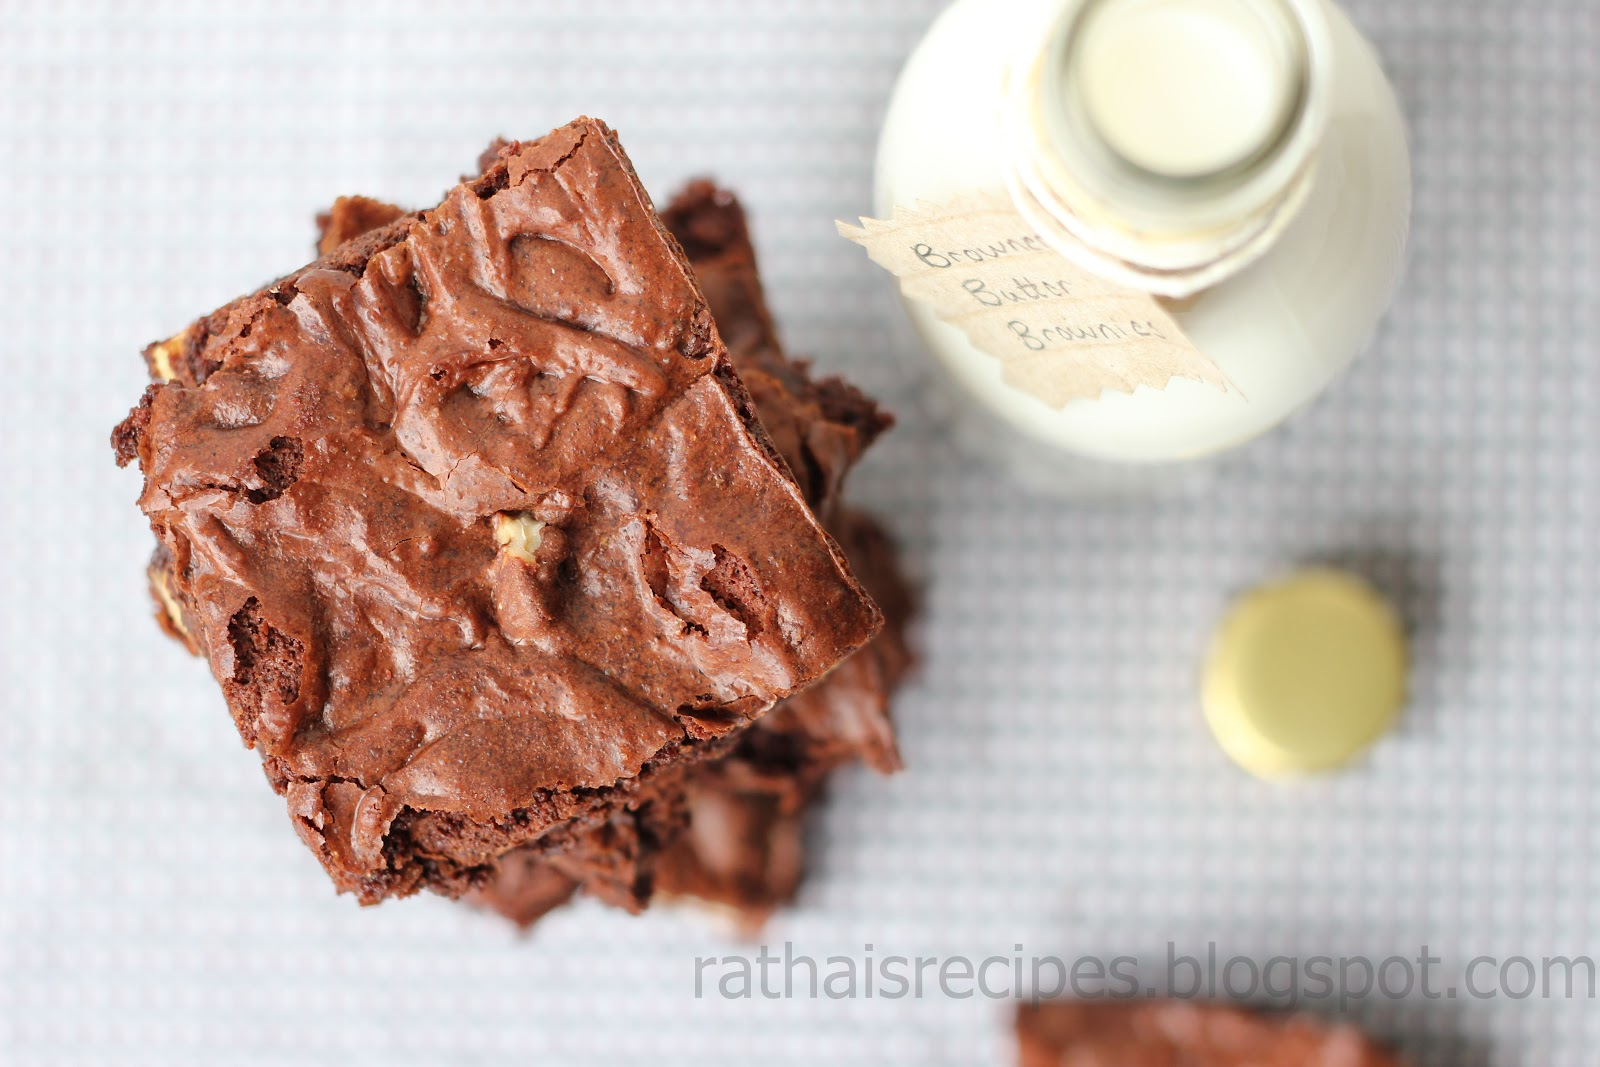 Rathai's Recipes: Browned Butter Brownies